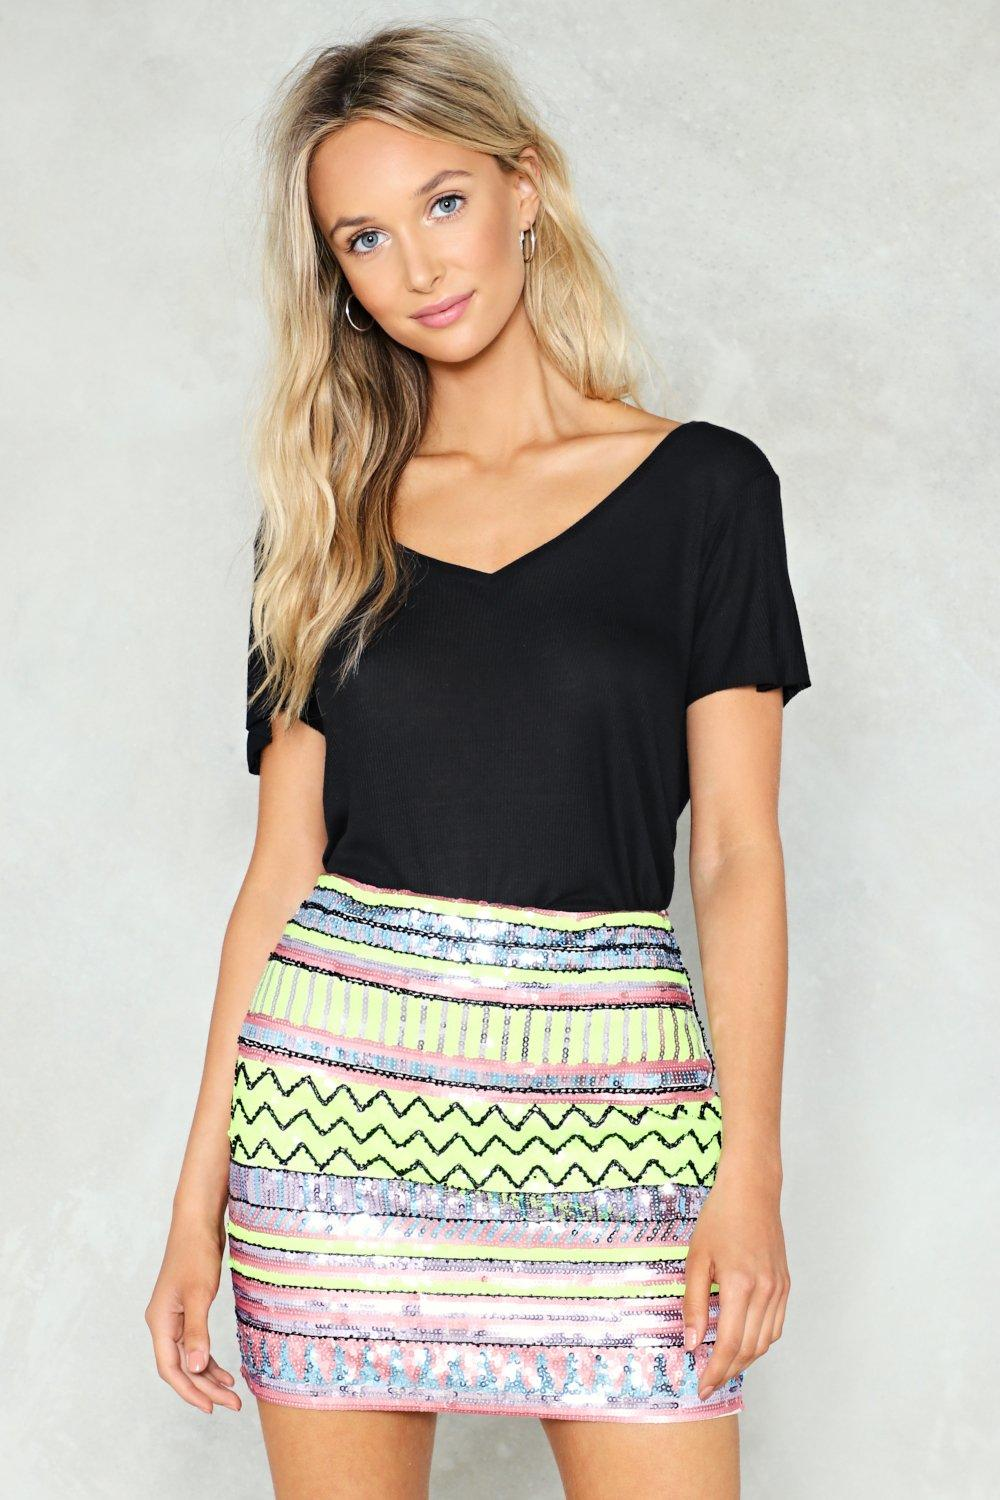 d89813ab5f Hey Bright Eyes Sequin Skirt | Shop Clothes at Nasty Gal!